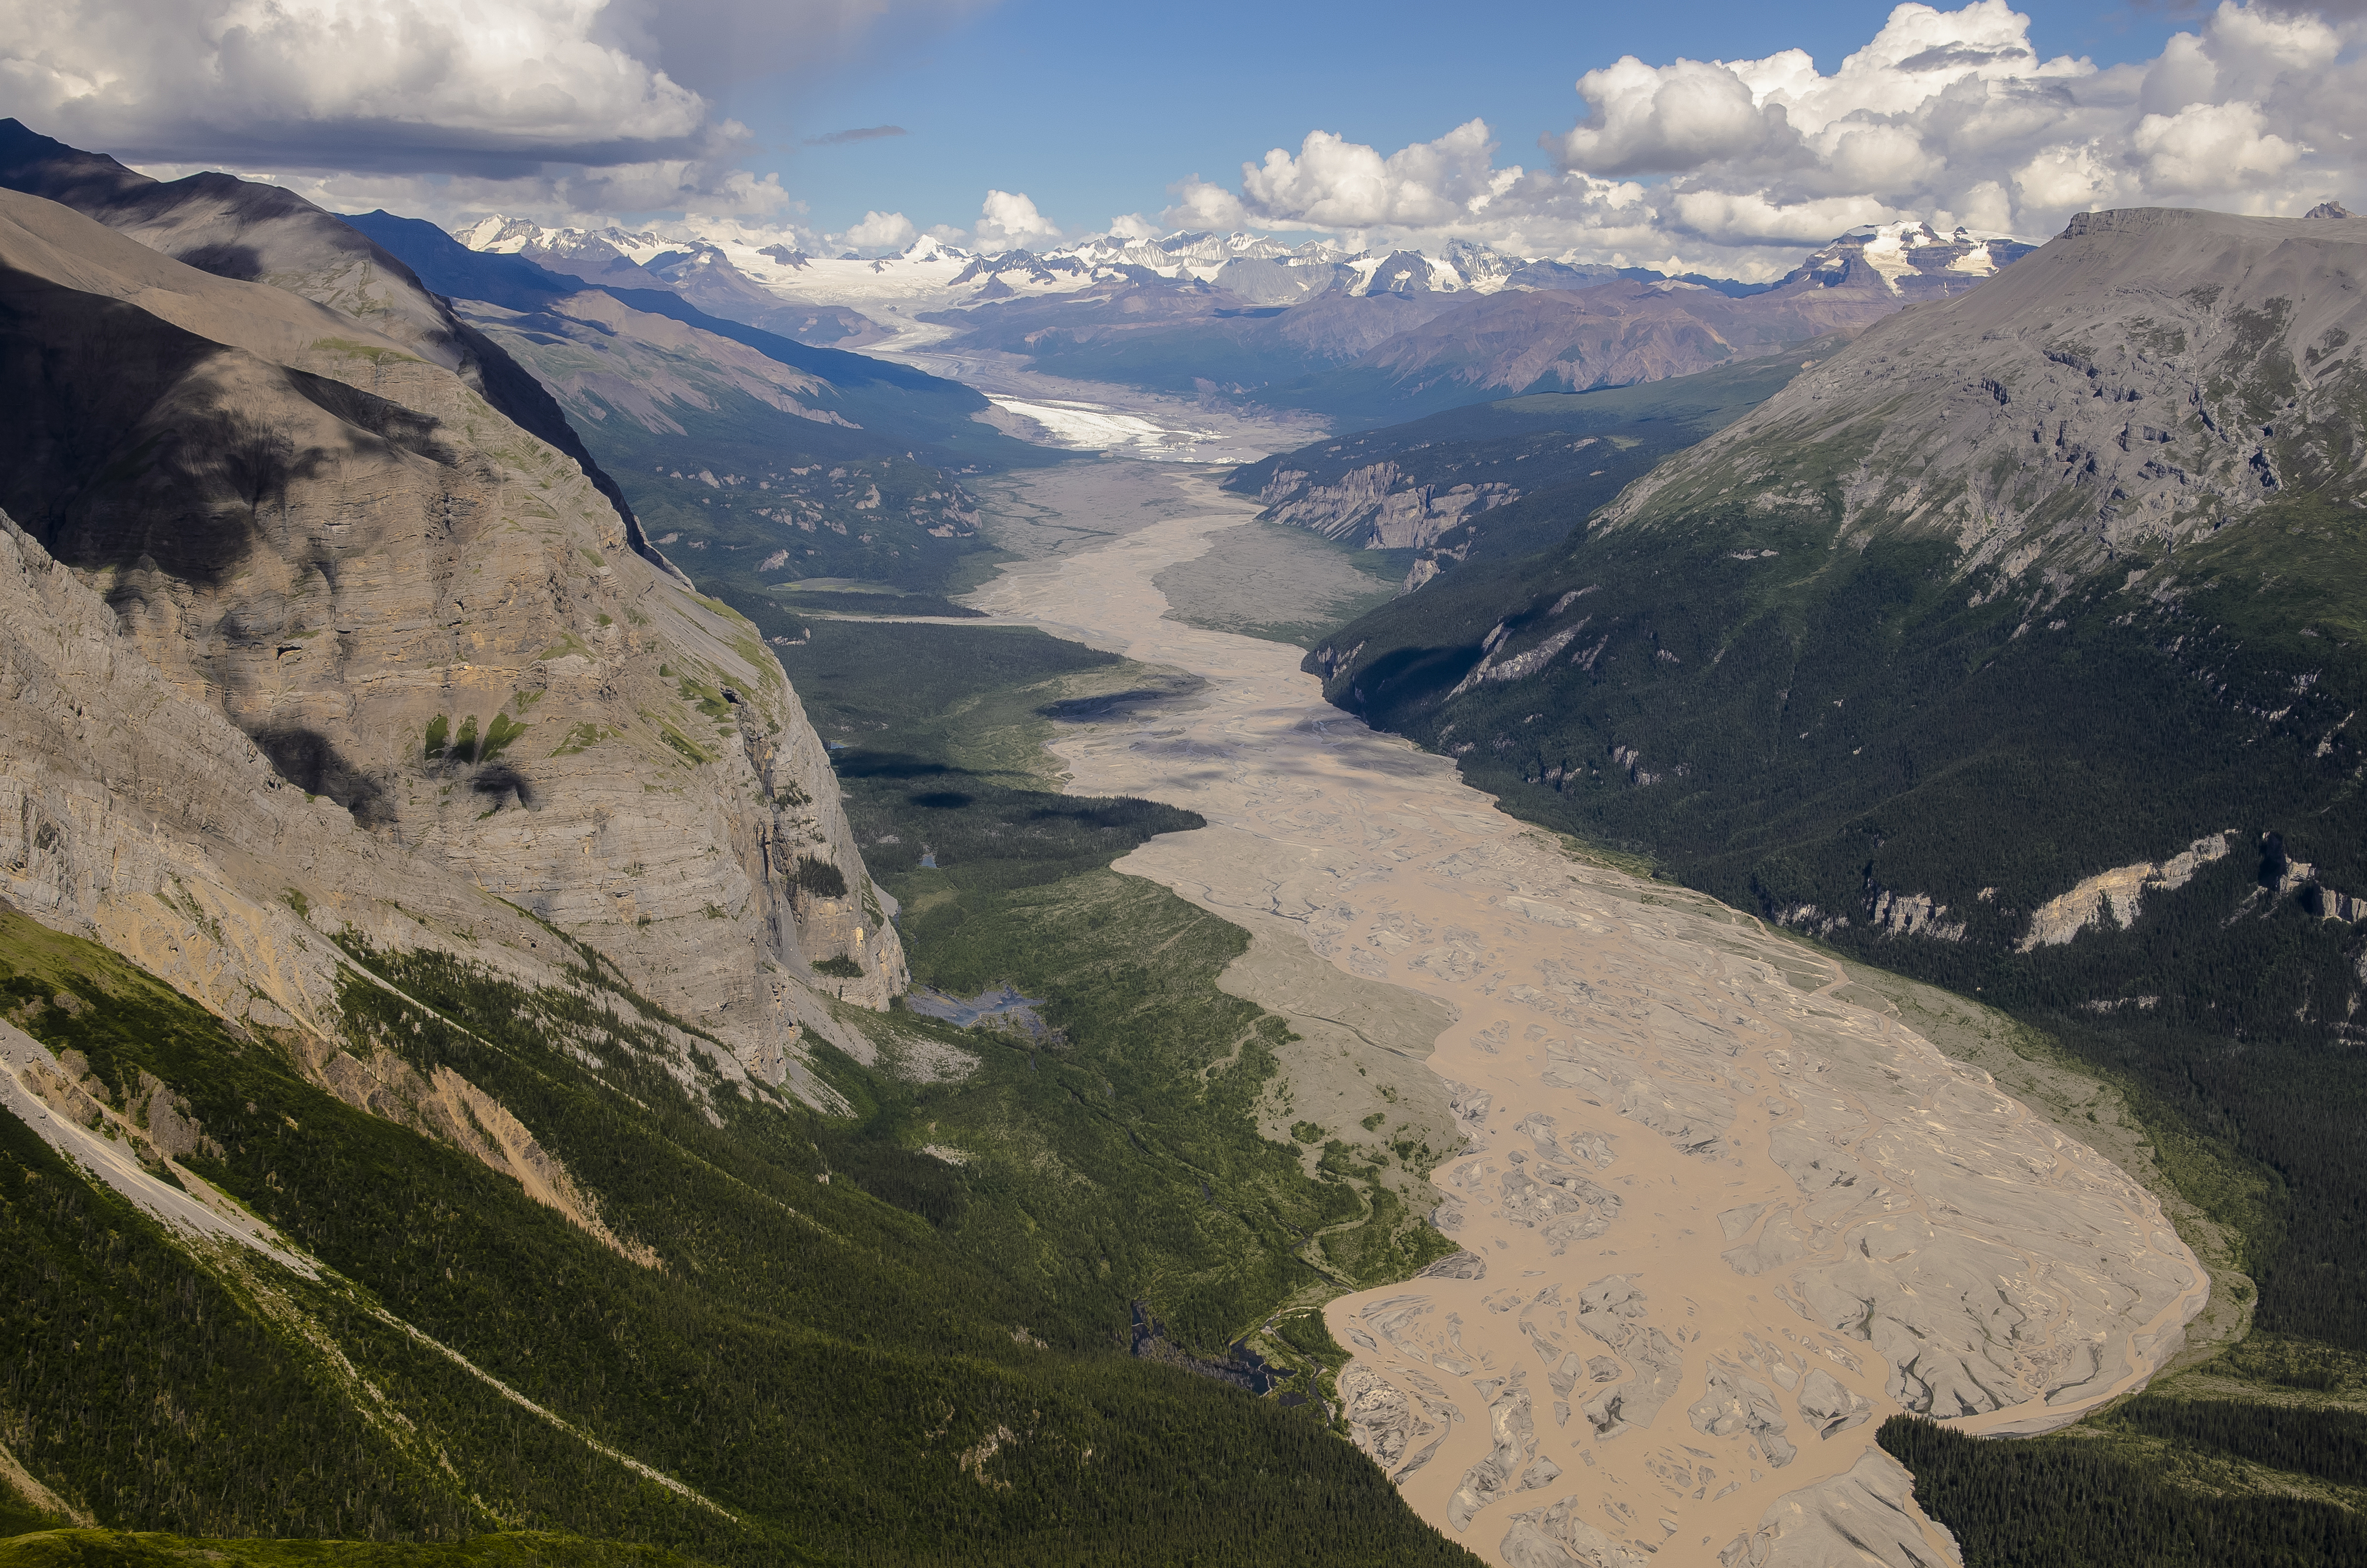 In wake of pack-rafter incident at Wrangell St. Elias, experts highlight proper preparation